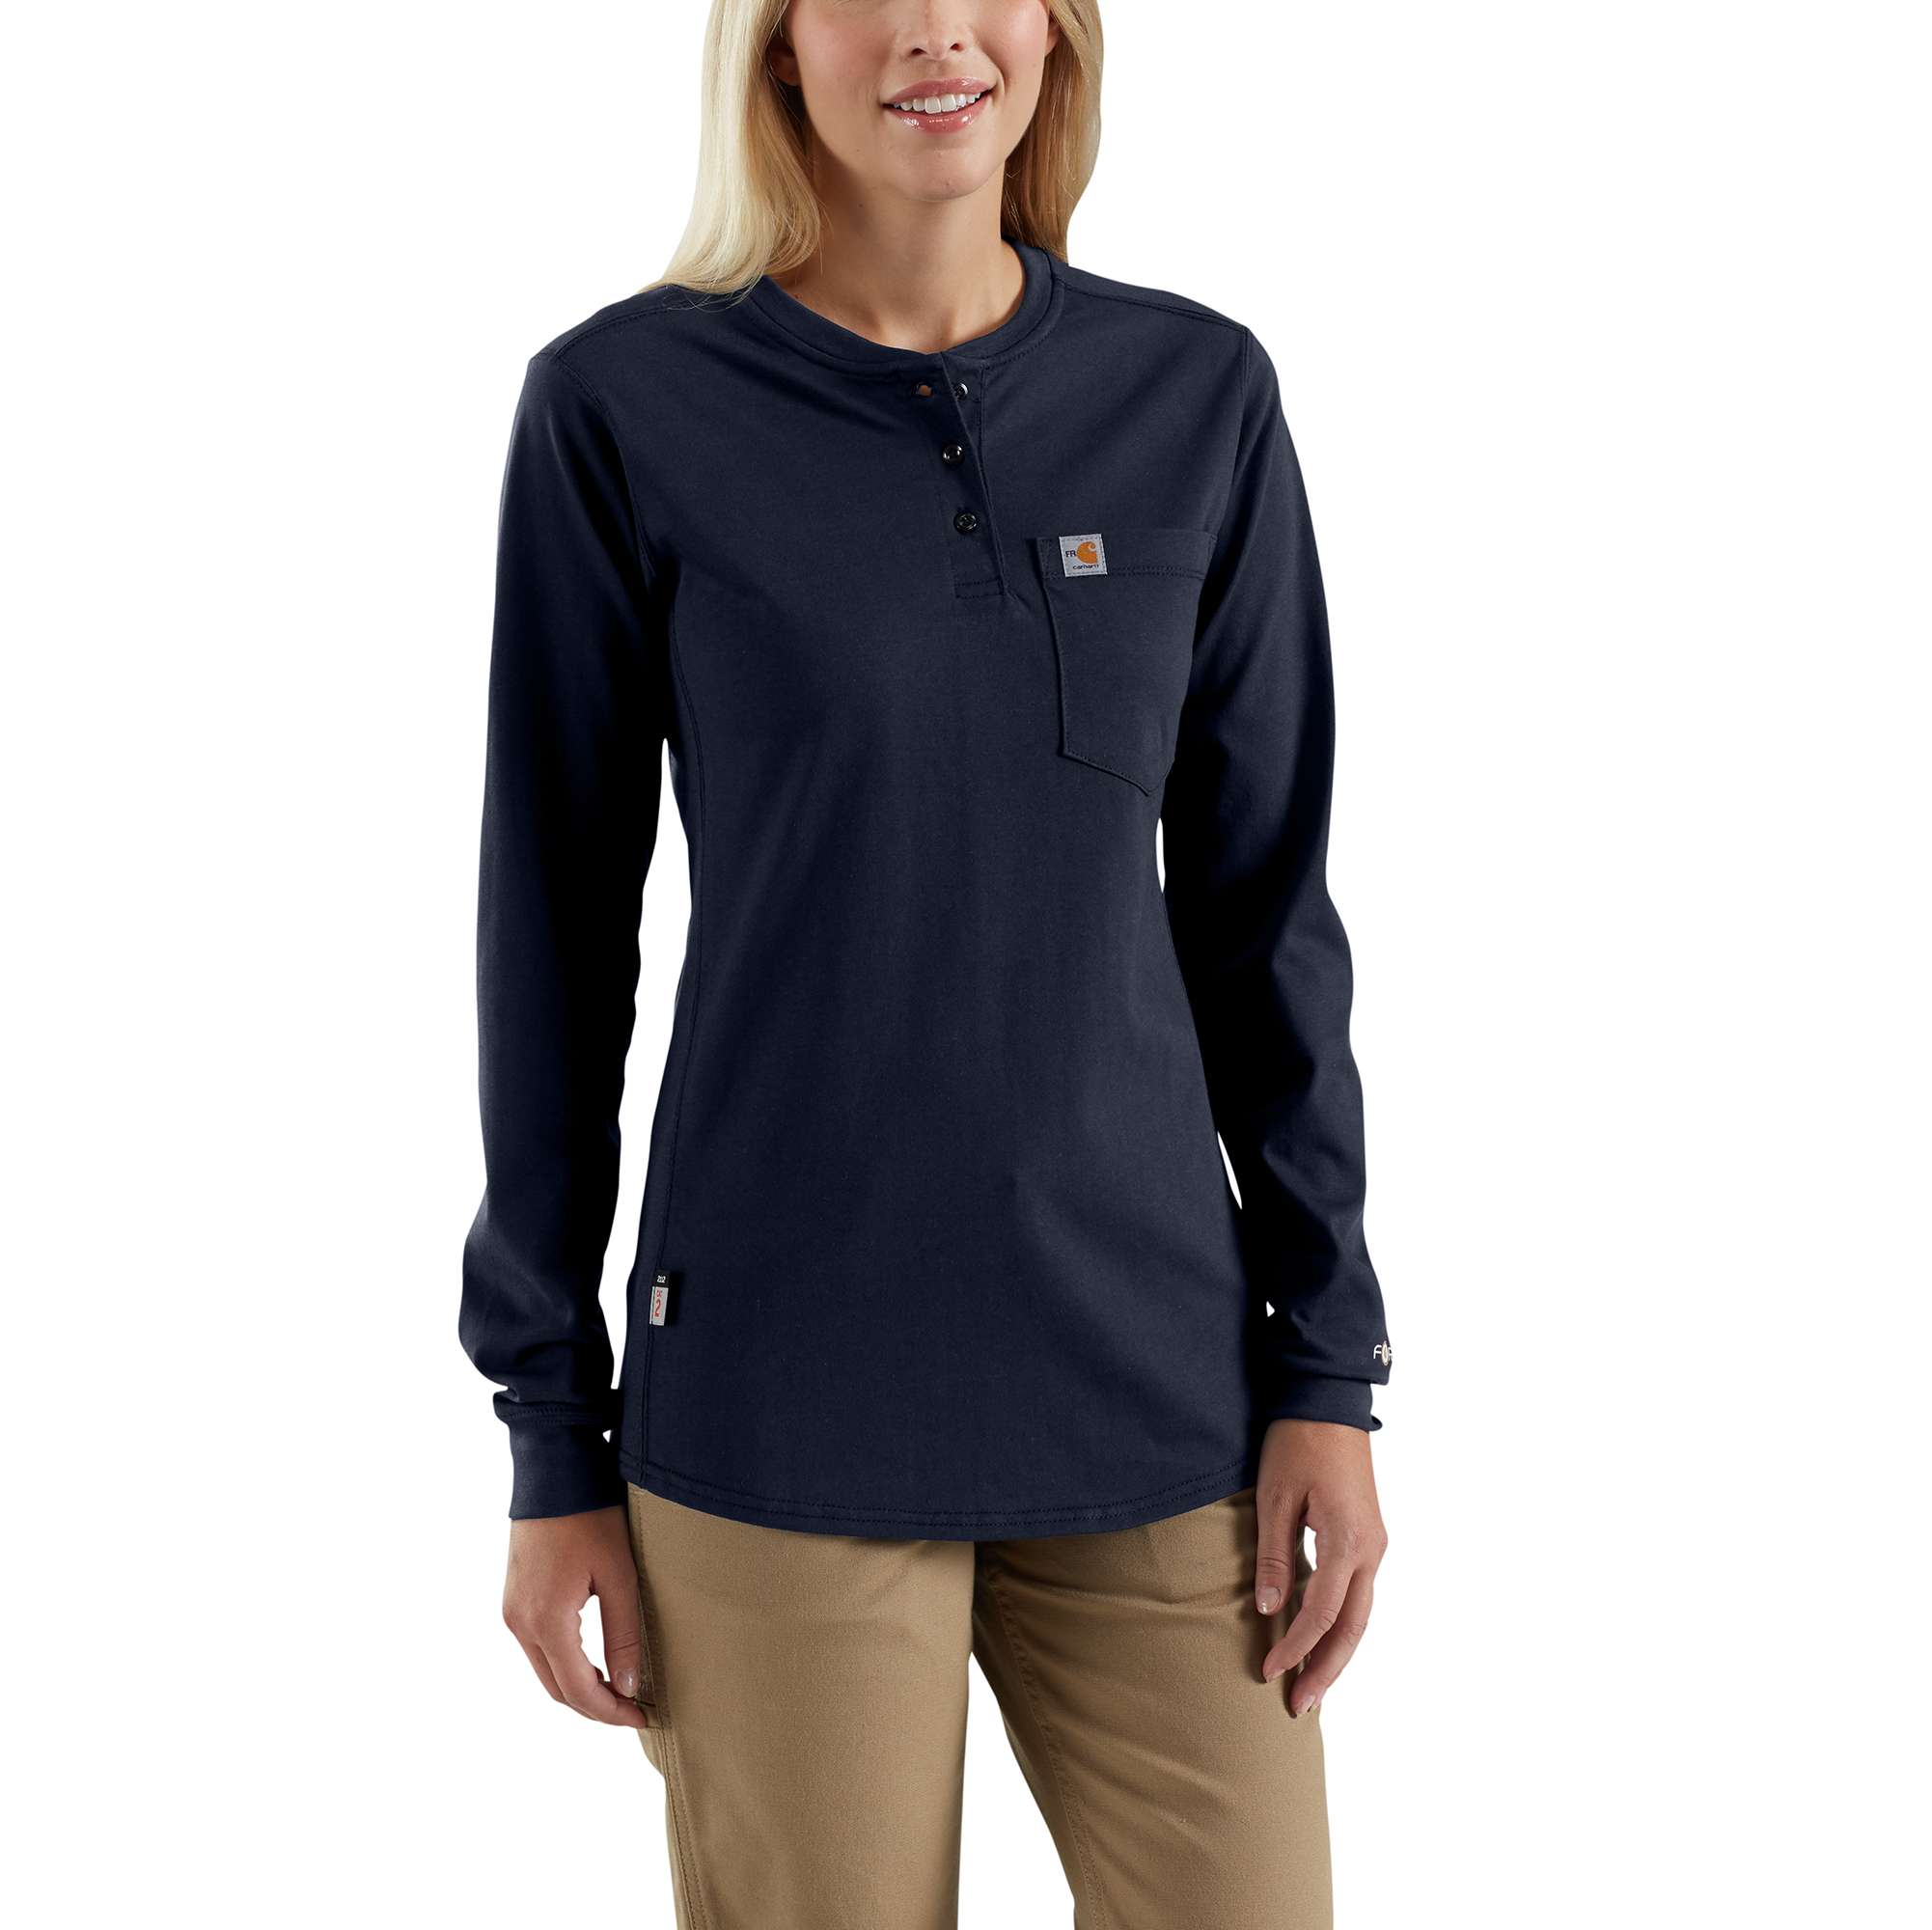 Carhartt Women's FR Force Cotton Long-Sleeve Henley